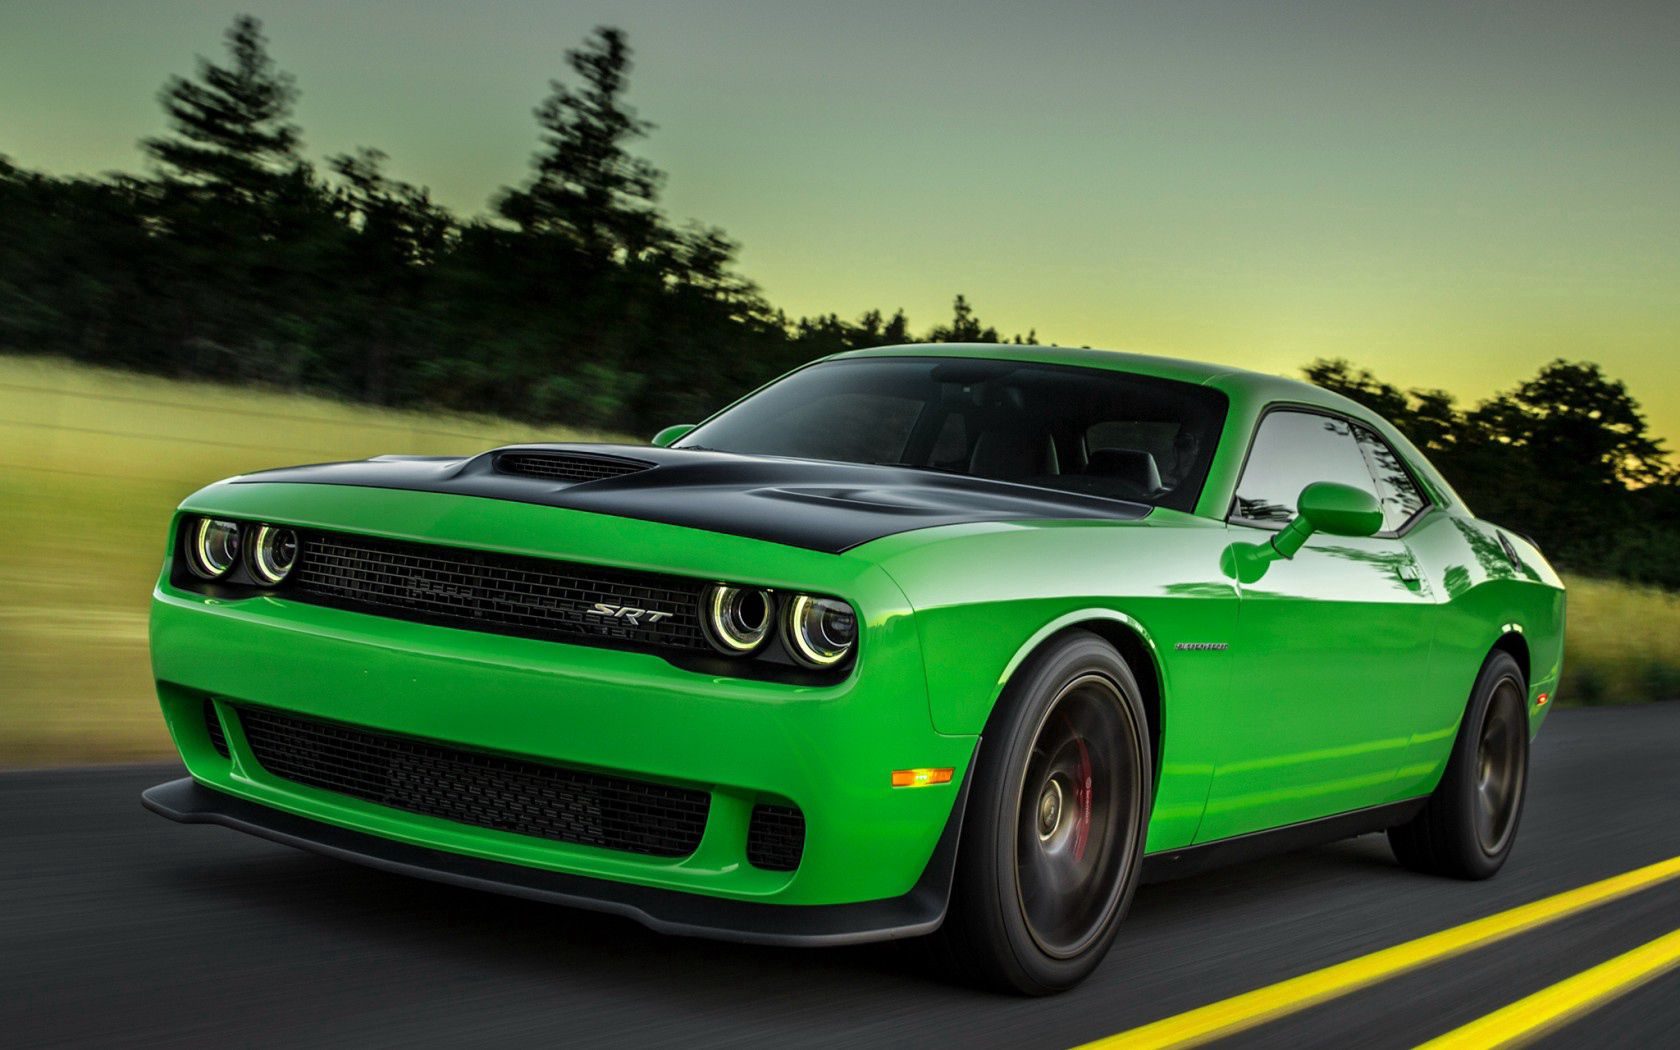 115670 free download Green wallpapers for phone, Cars, 2015, Dodge, Challenger, Side View, Speed Green images and screensavers for mobile